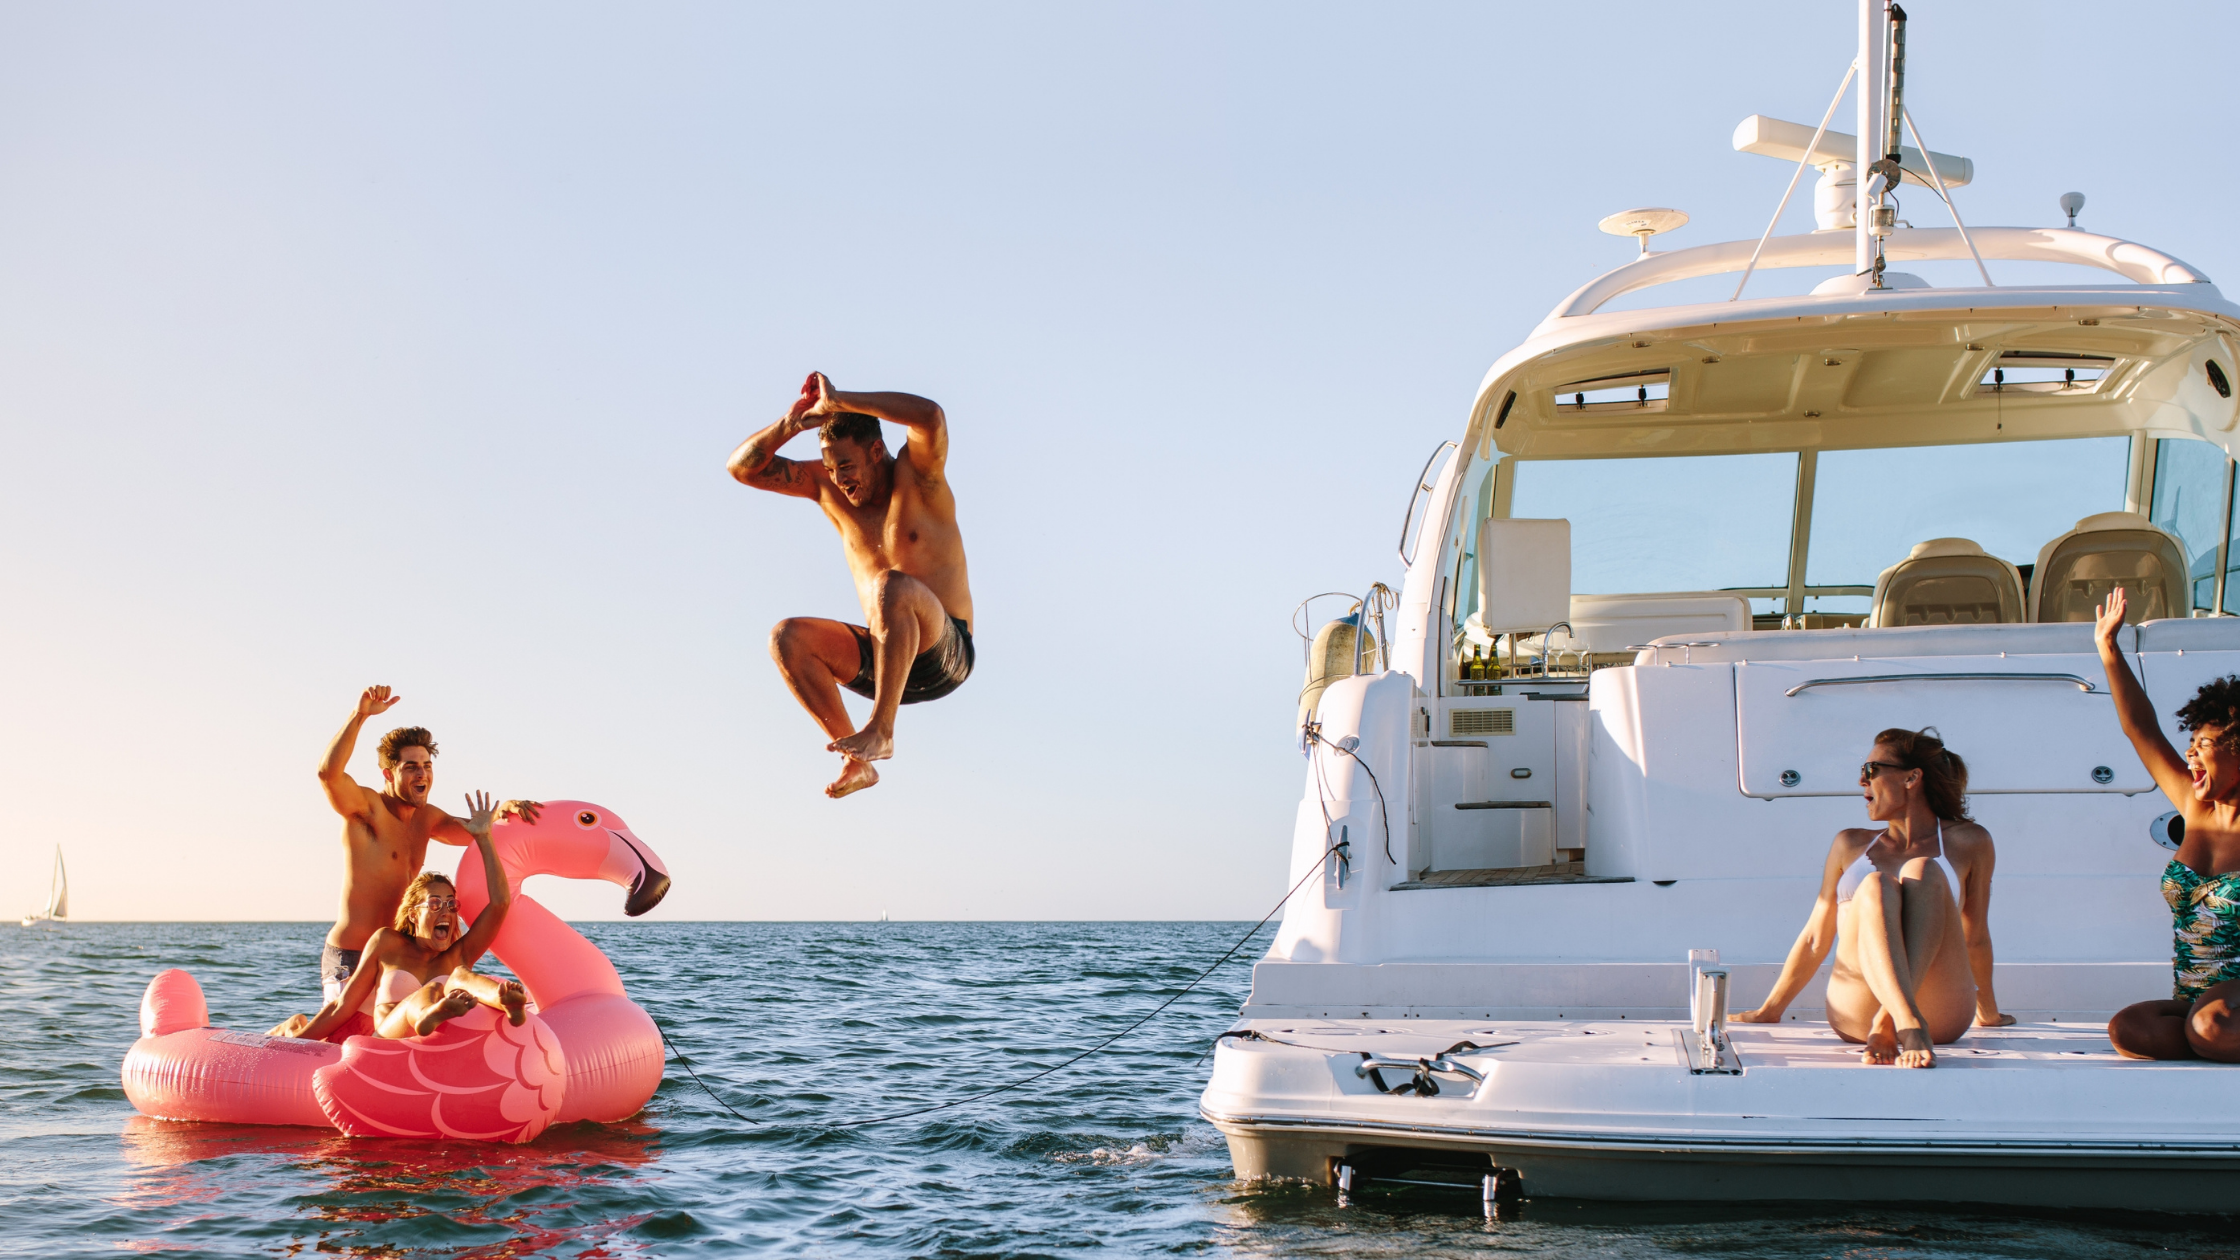 Snag-A-Slip Blog - How to Raft Up Safely with Other Boats